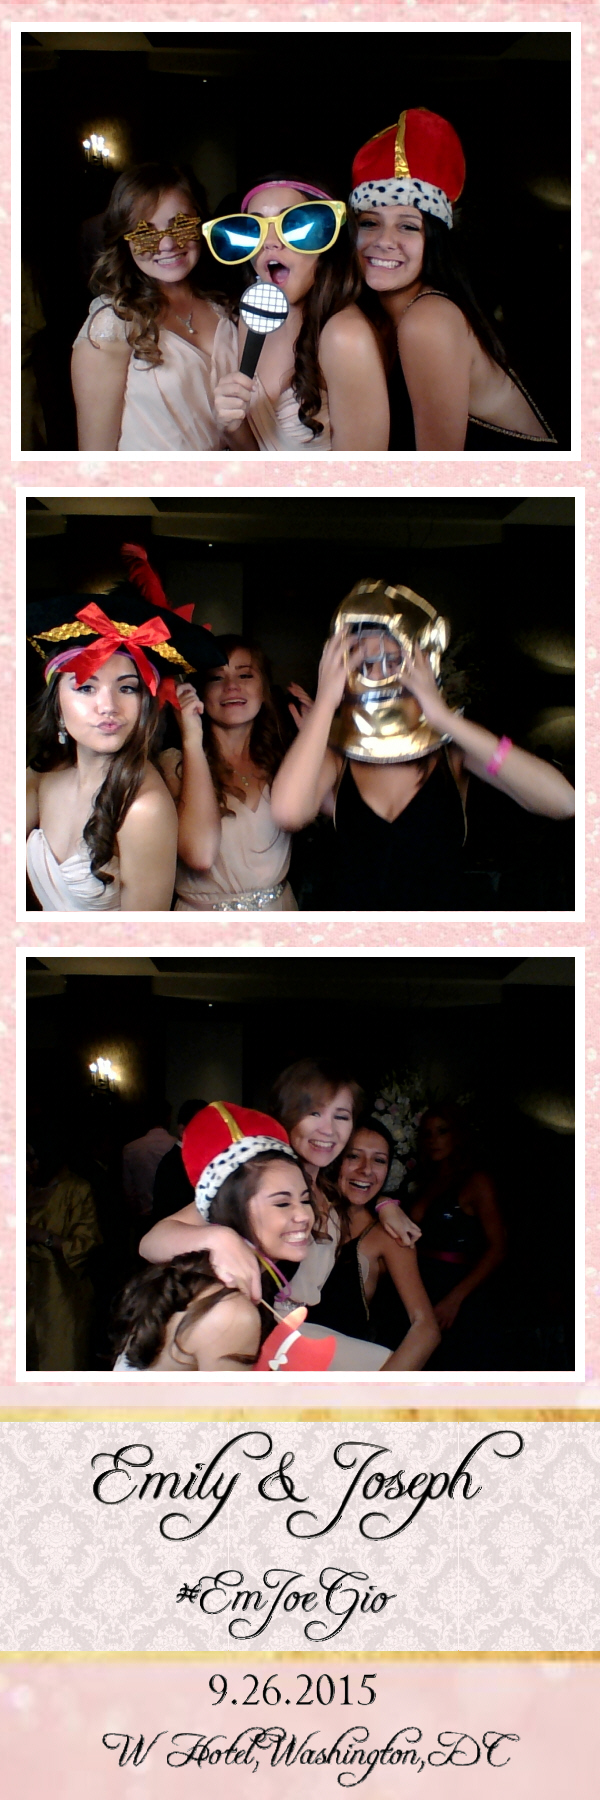 Guest House Events Photo Booth E&J (51).jpg